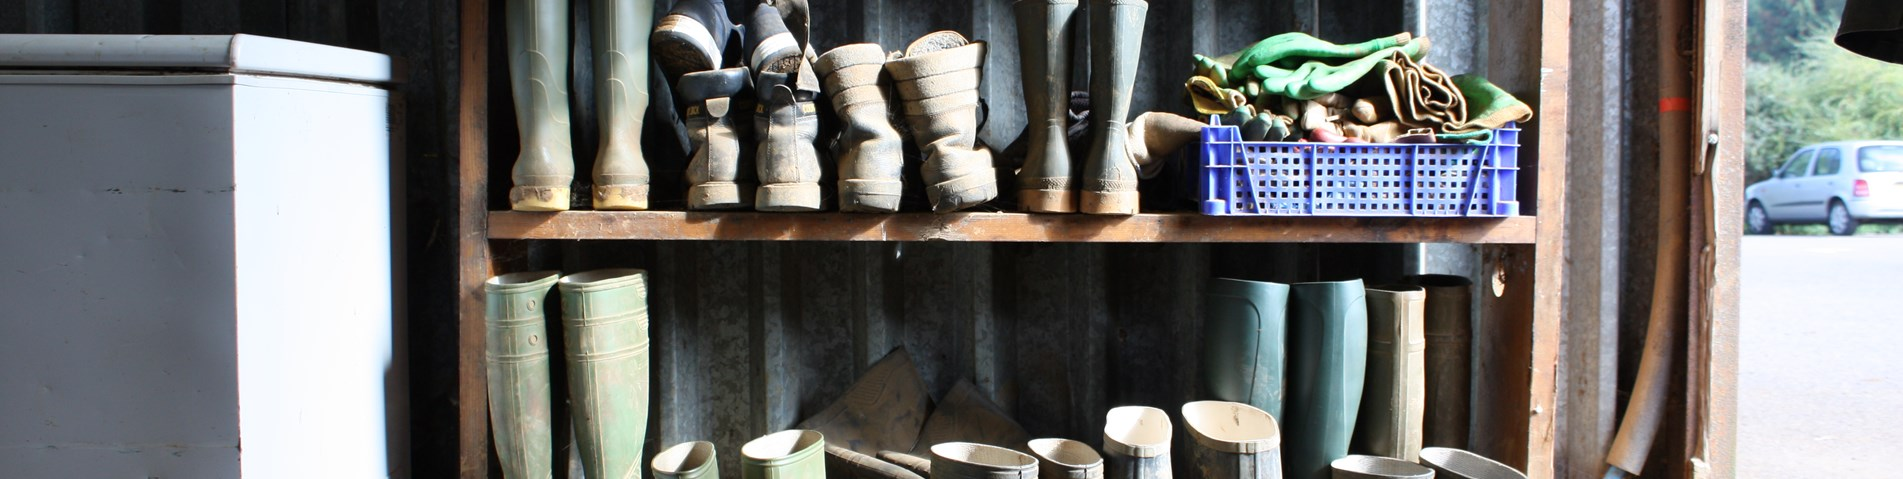 Wellies and shoes on rack